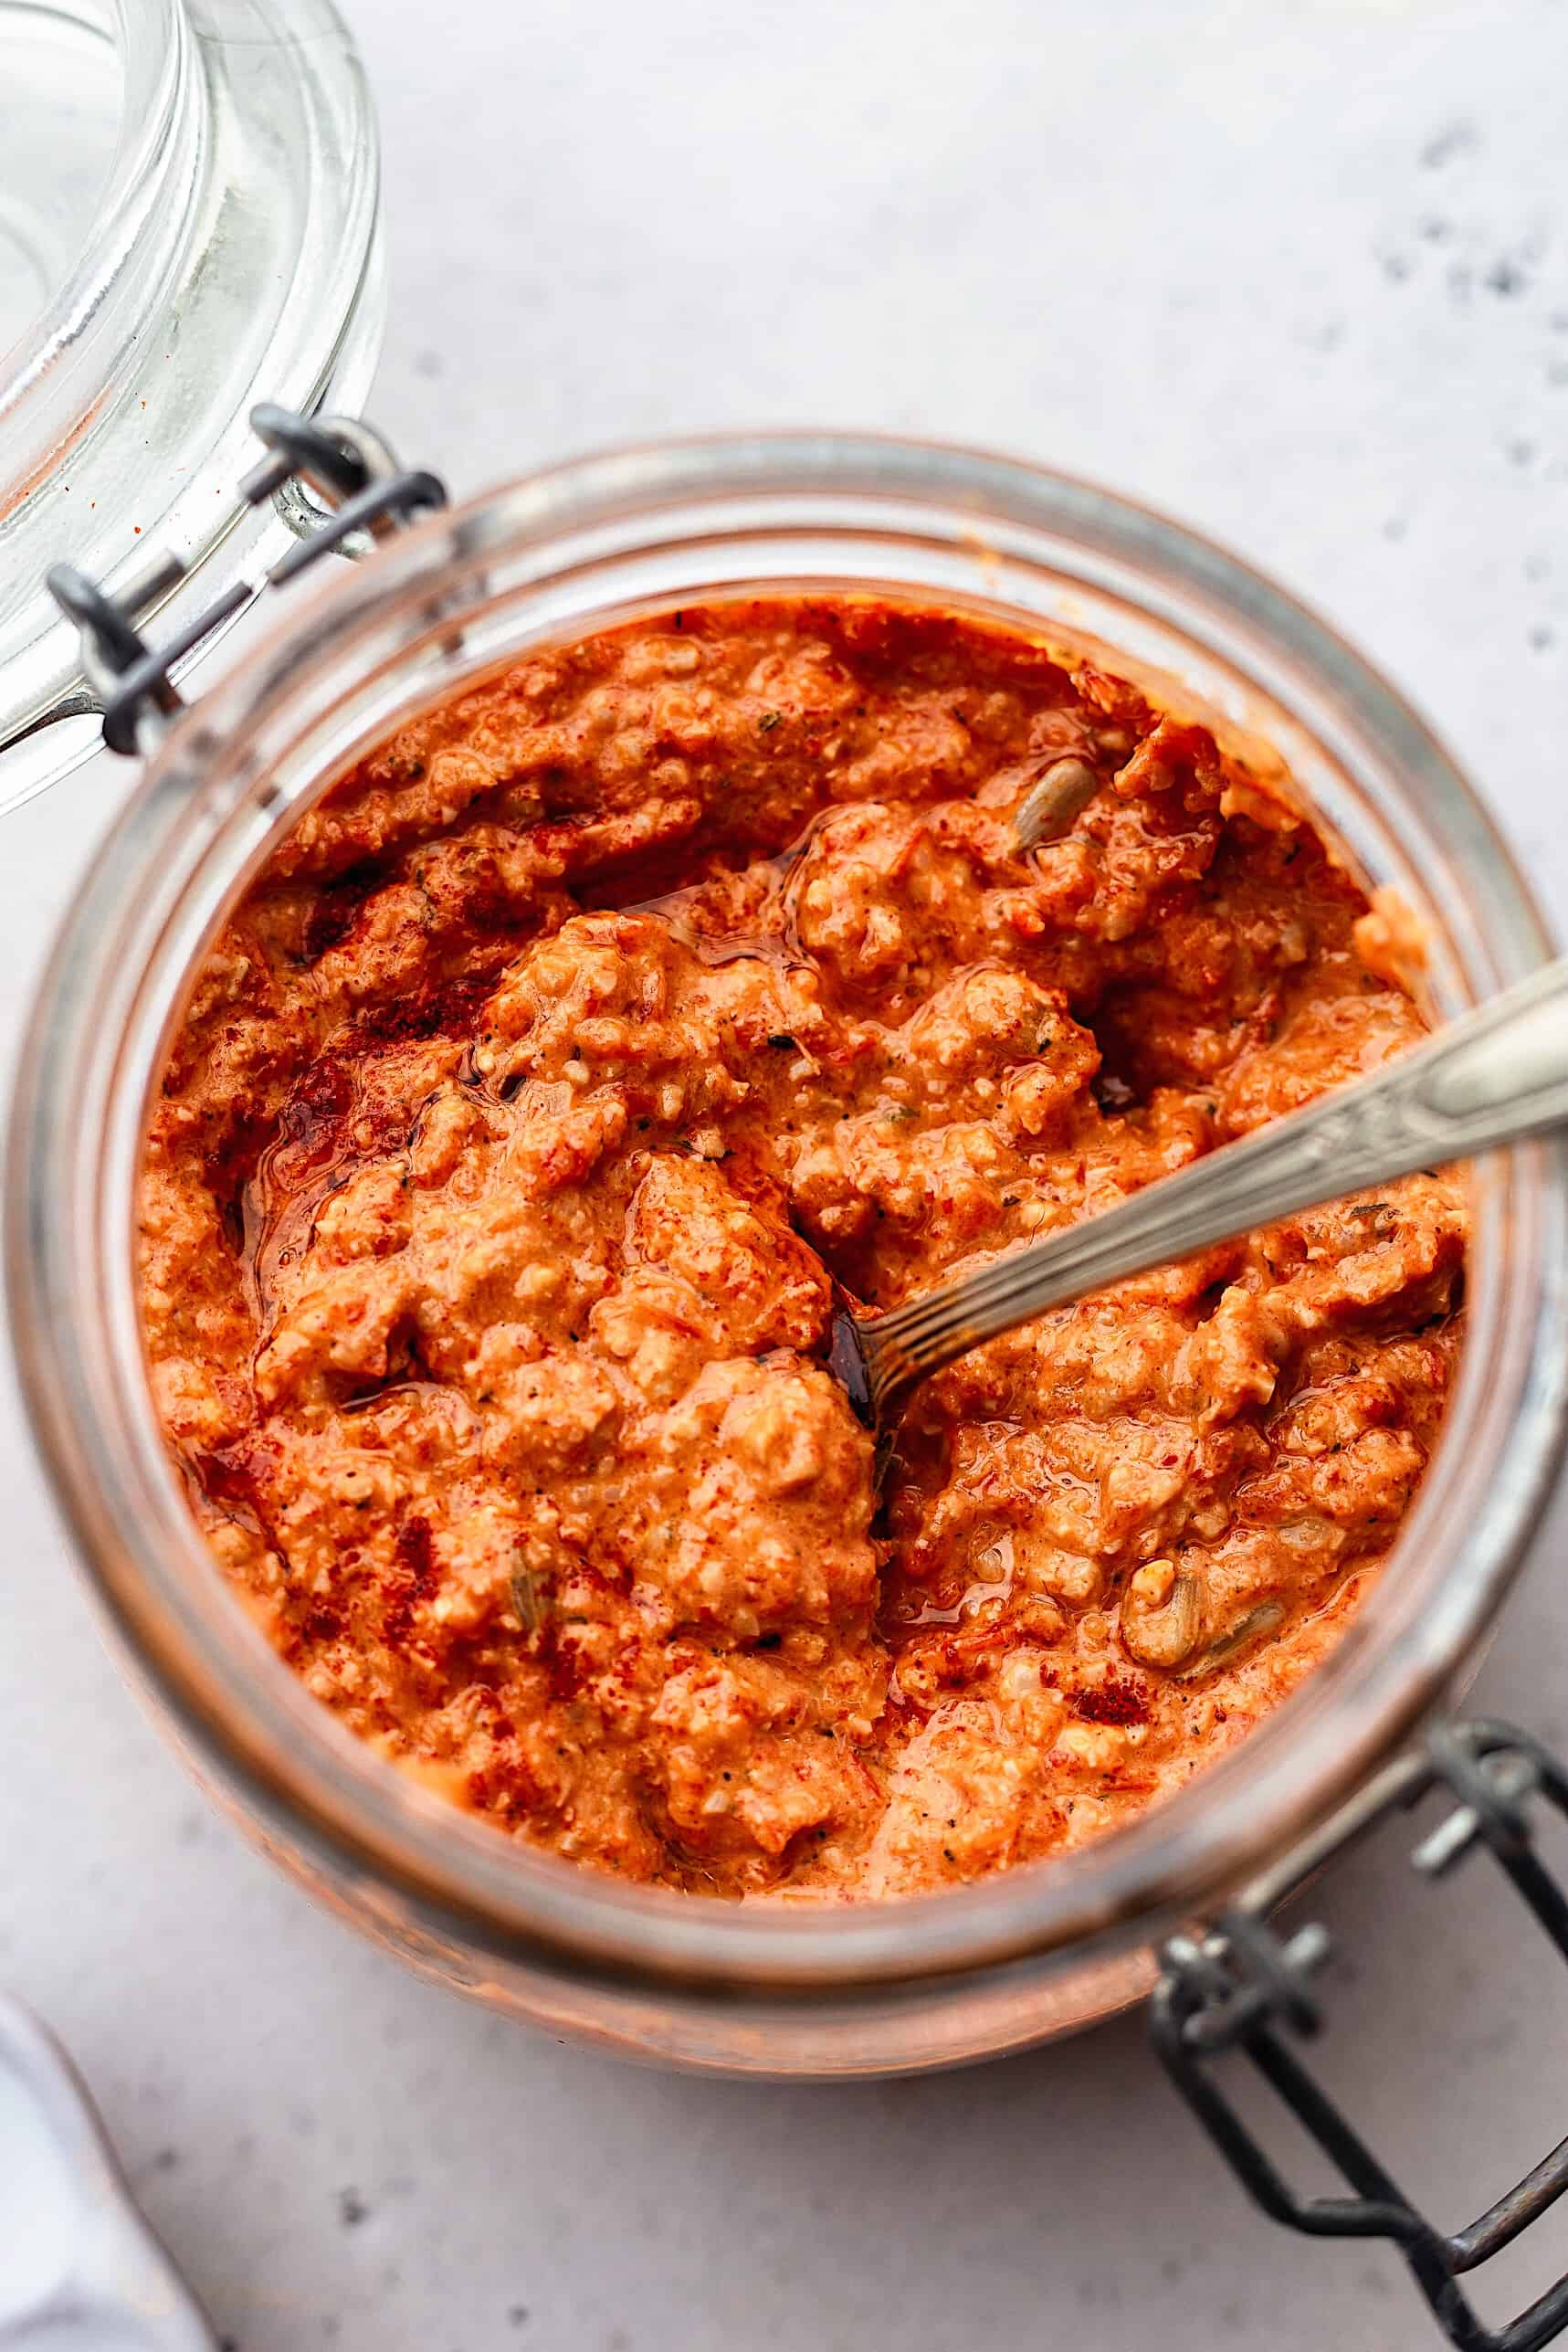 Sunflower Seed Romesco Sauce #spanishrecipe #recipe #food #vegan #nutfree #glutenfree #romesco #pepper